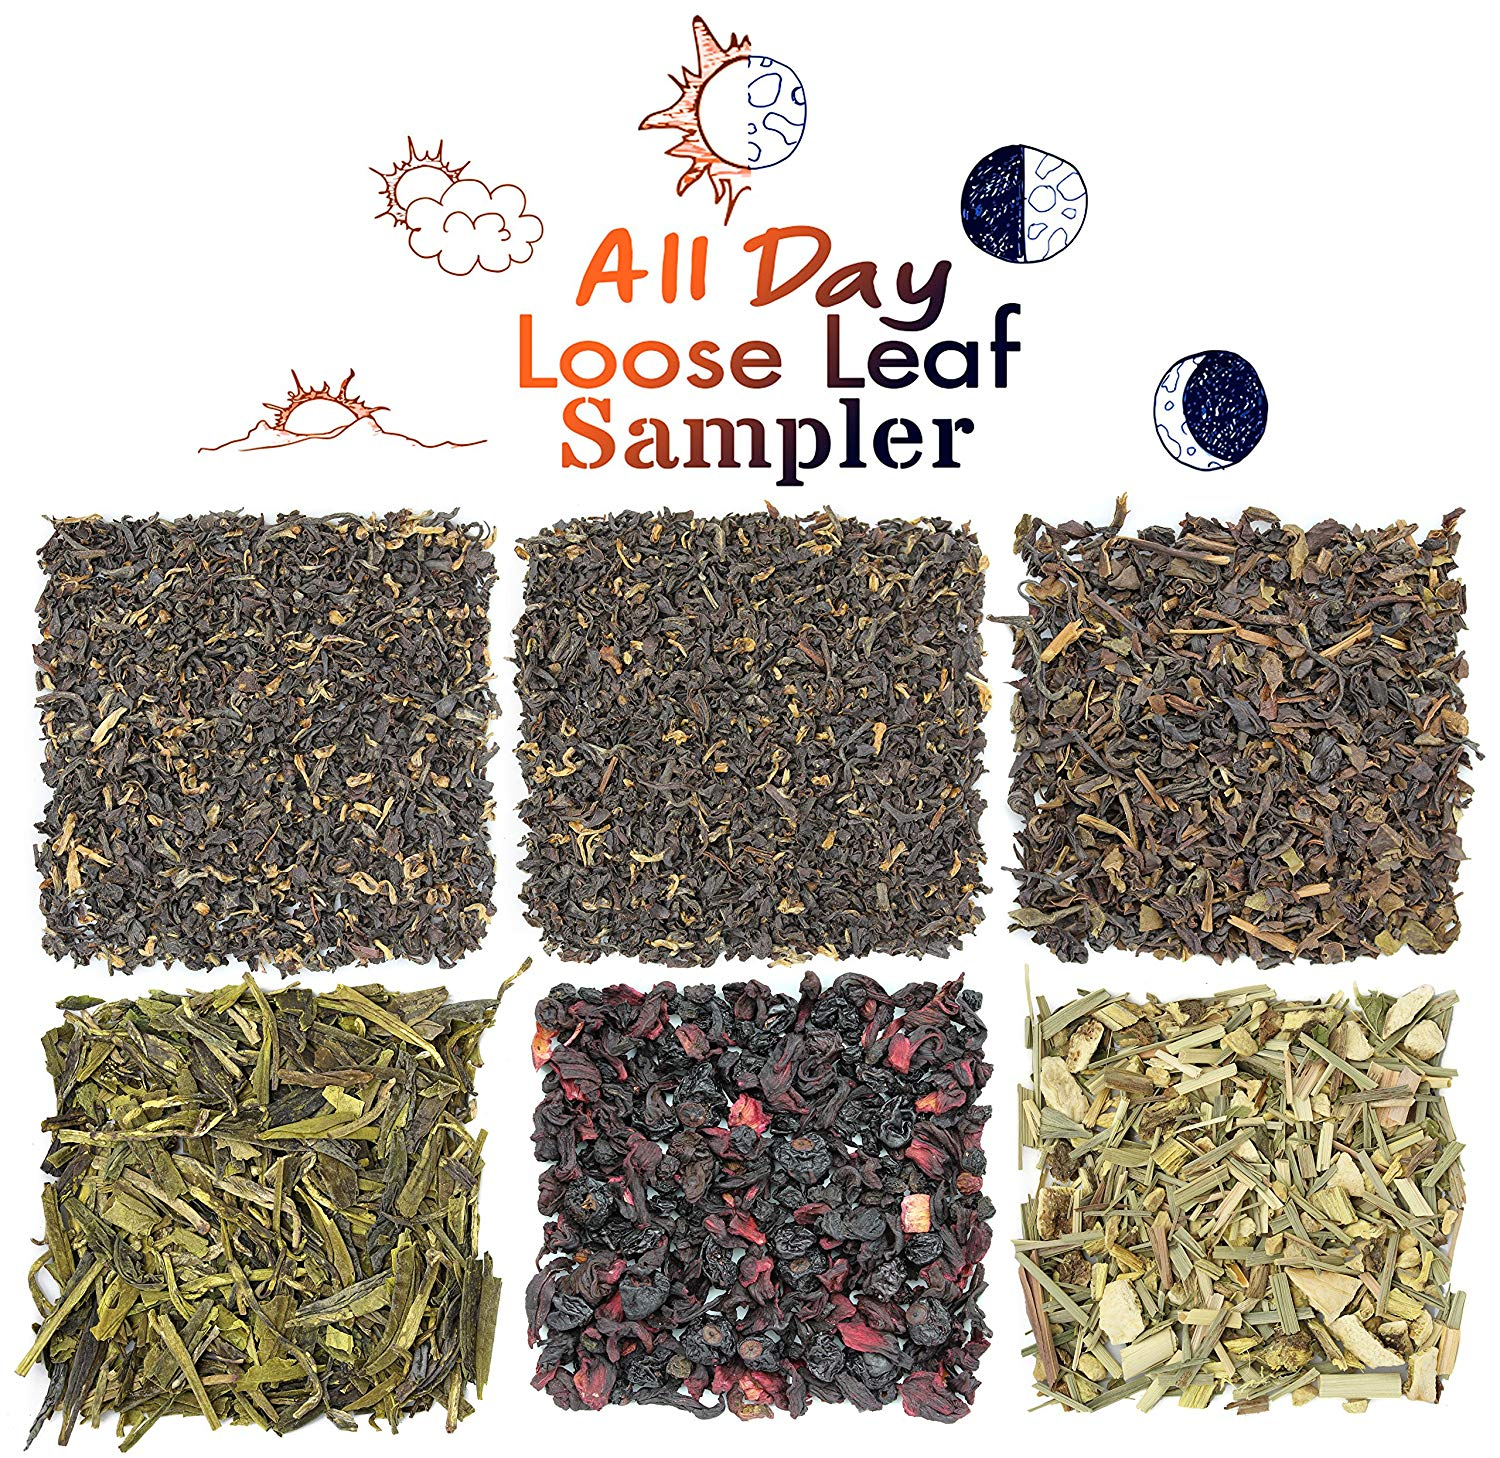 All Day Loose Leaf Tea Sampler Perfect For Hot & Iced Tea, Variety Set of 6 Teas for All Day Enjoyment with Black Morning Teas, Oolong & Green Afternoon Teas, Herbal Night Teas. Approx 90+ Cups